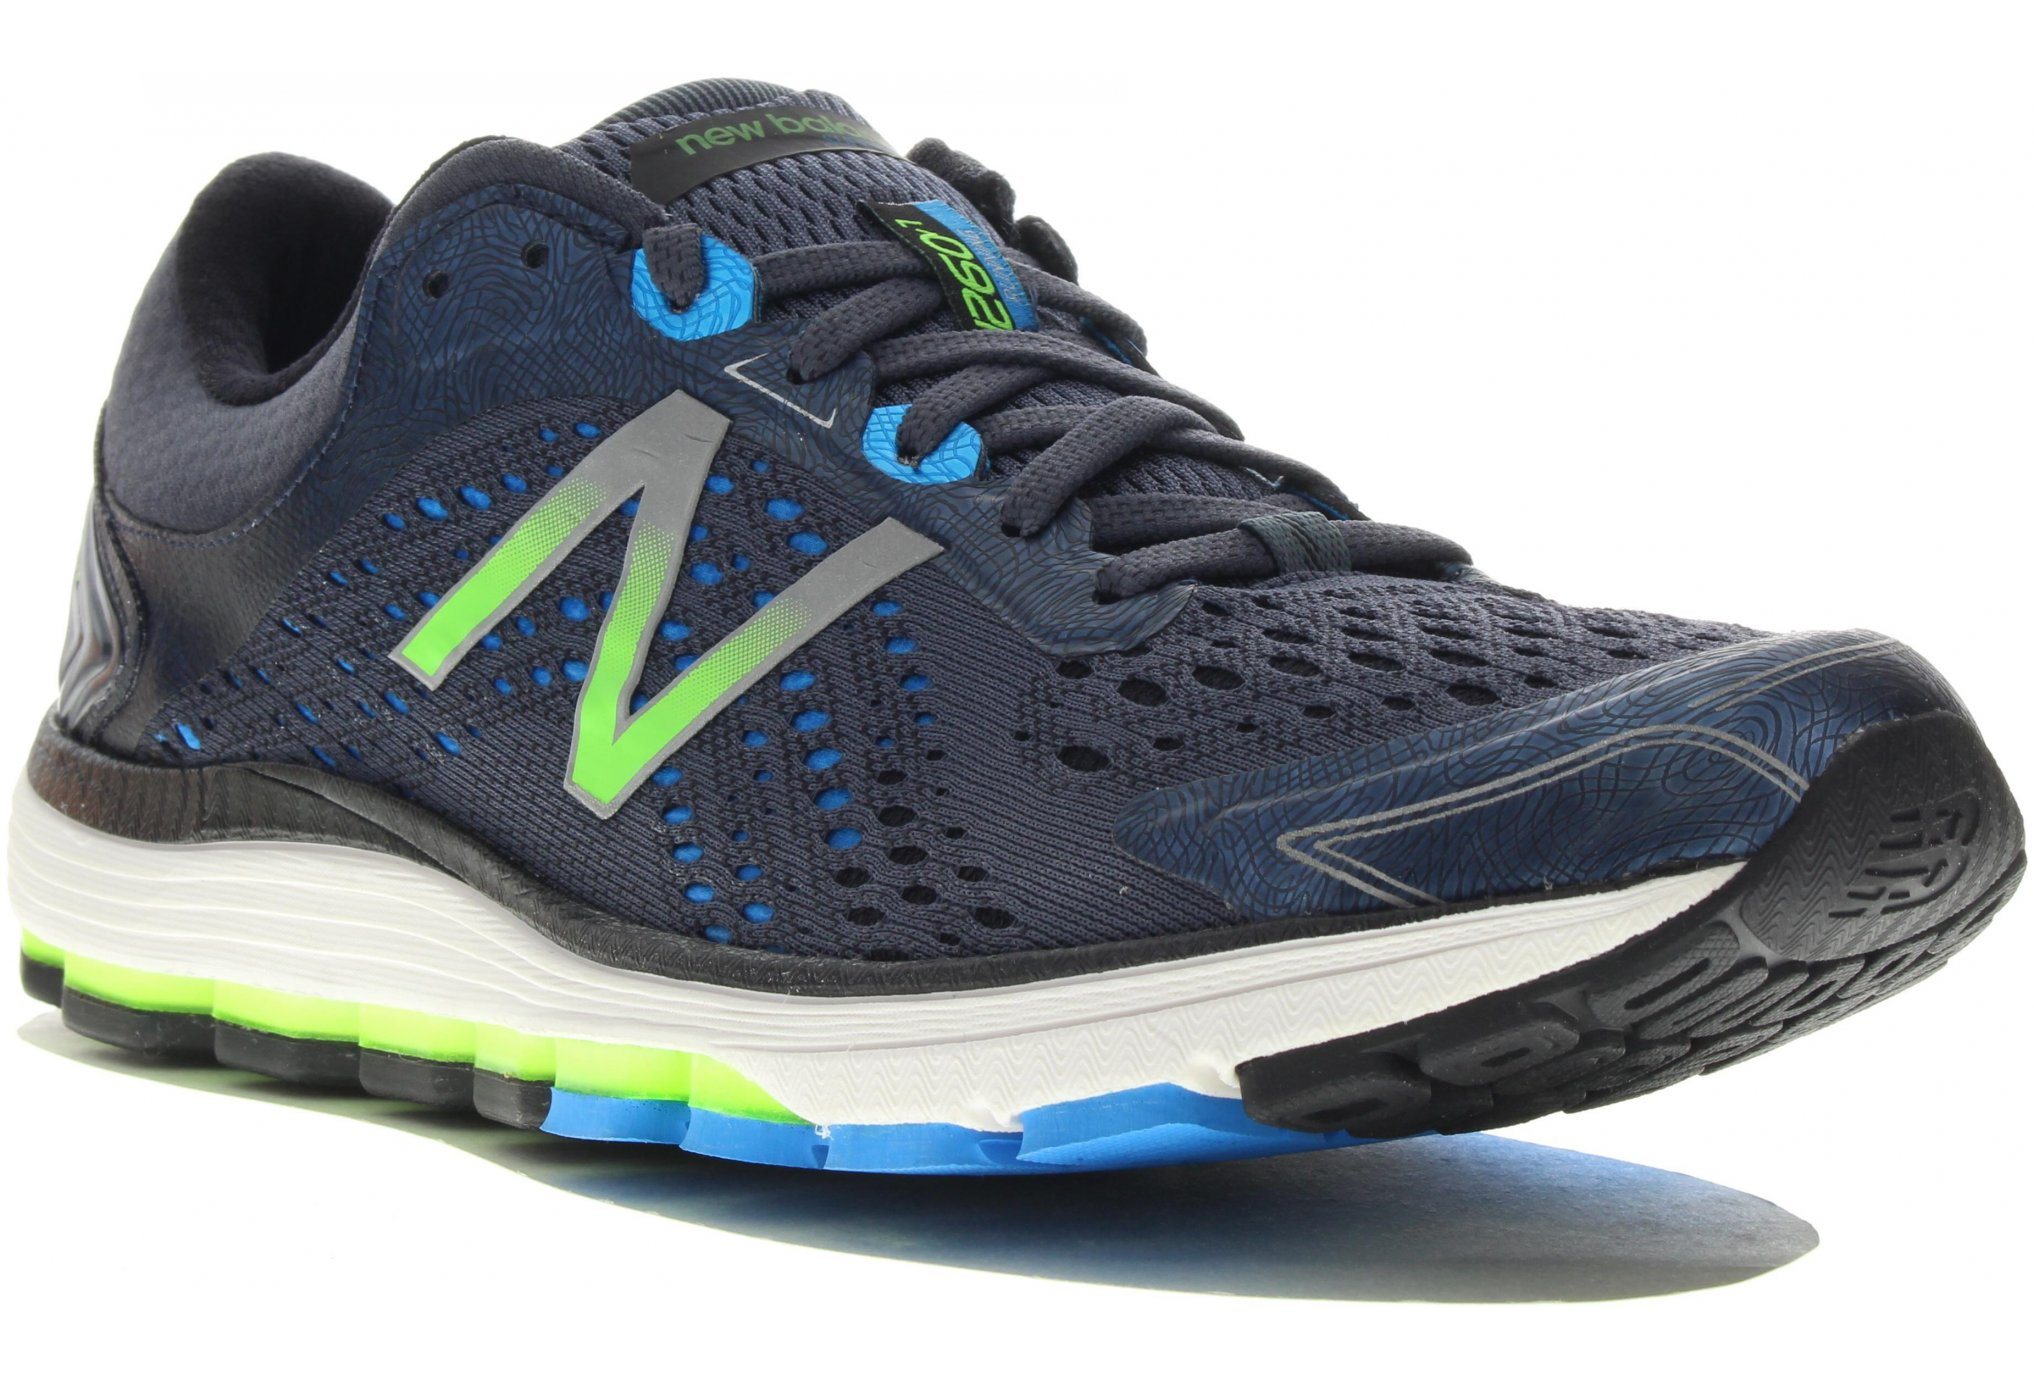 Course Nature LA LUPEENNE New Balance M 940 v3 Chaussures